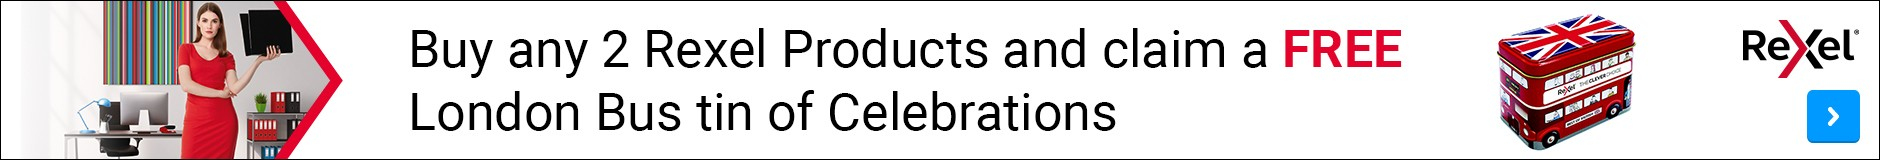 Buy any 2 Rexel Products and claim a FREE London Bus tin of Celebrations